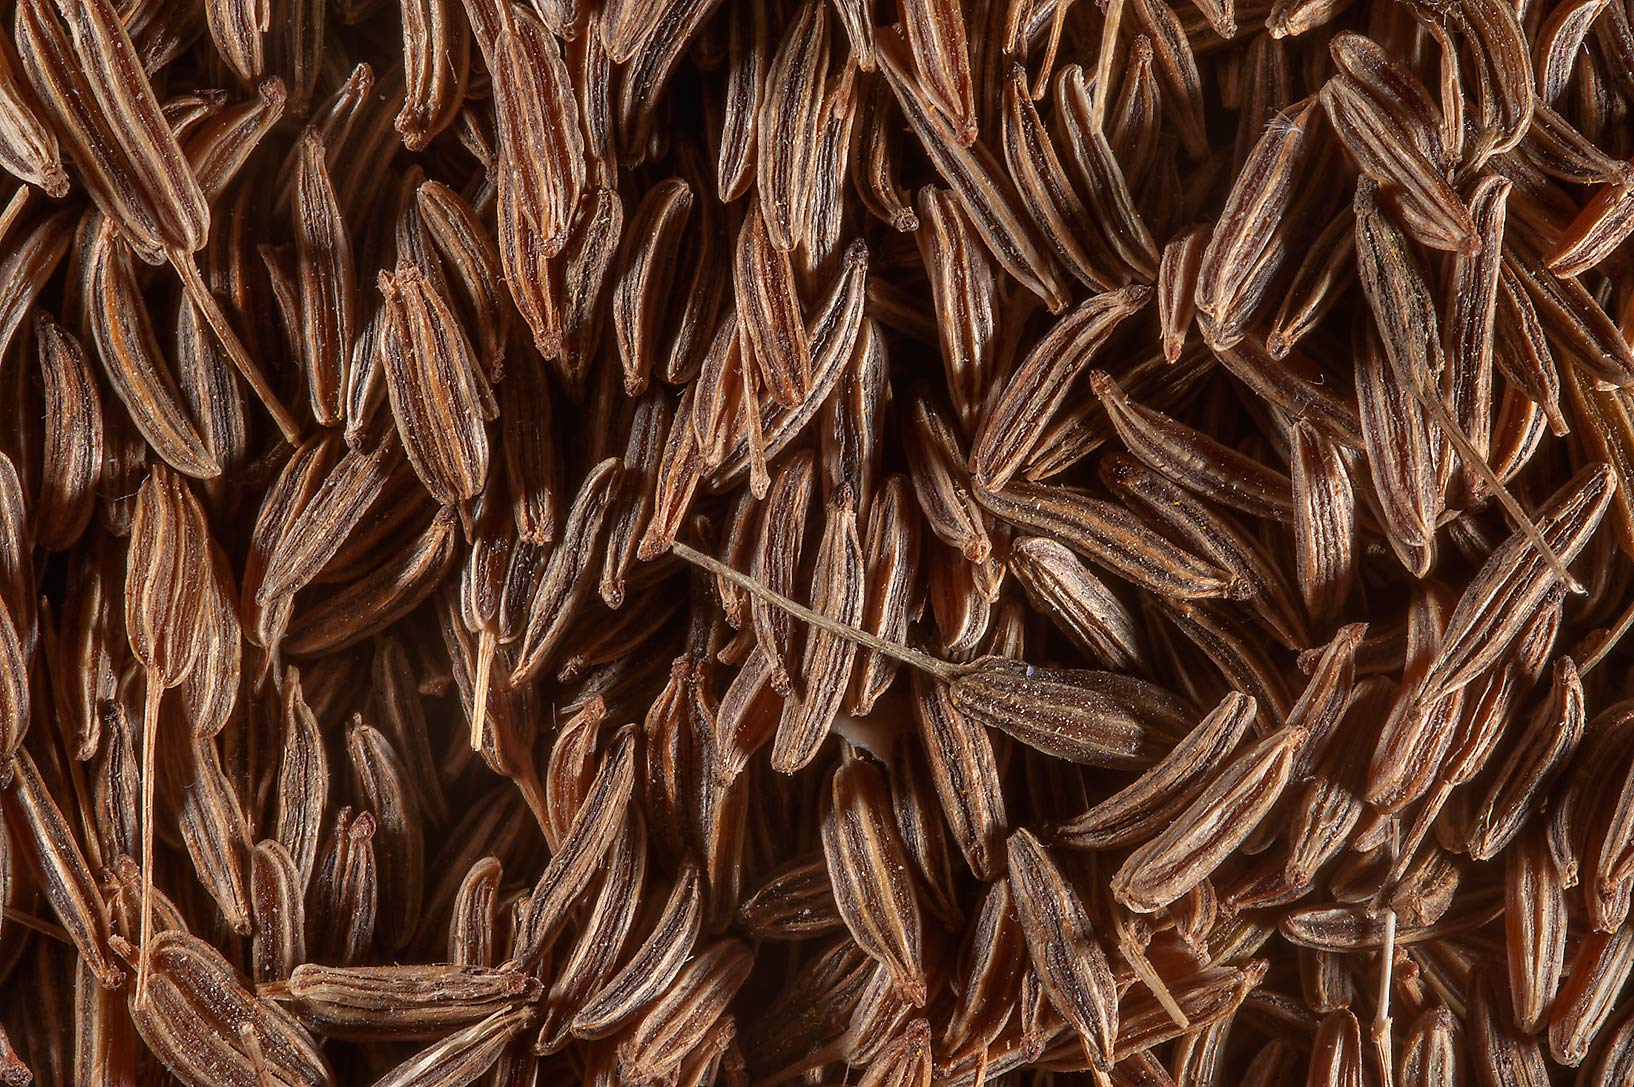 Cumin seeds (Cuminum cyminum) for sale in spice...Souq Waqif (Old Market). Doha, Qatar